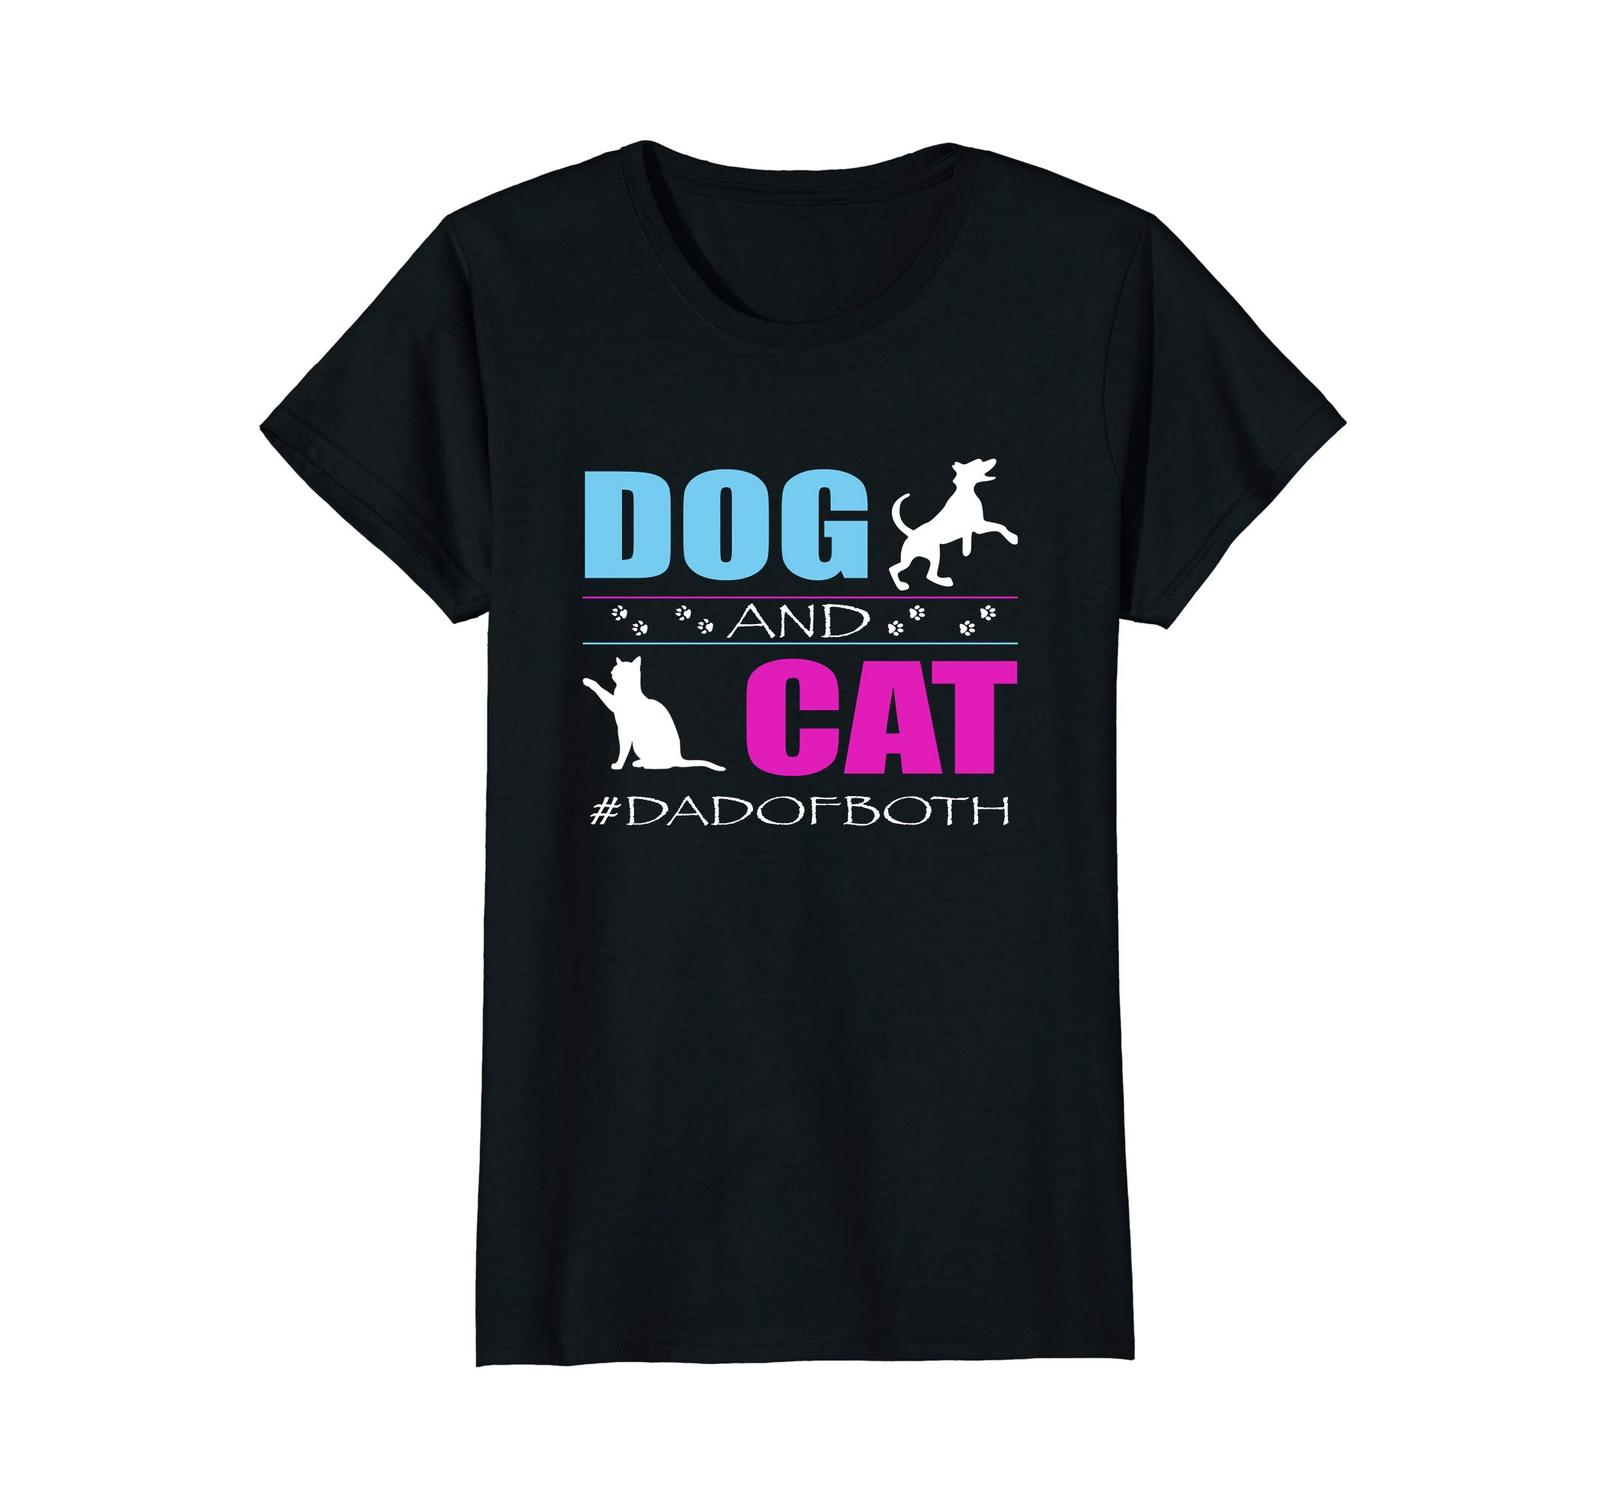 Primary image for Dog Fashion - Dog And Cat I Am A Dad Of Both Funny DadOfBoth TShirt Wowen